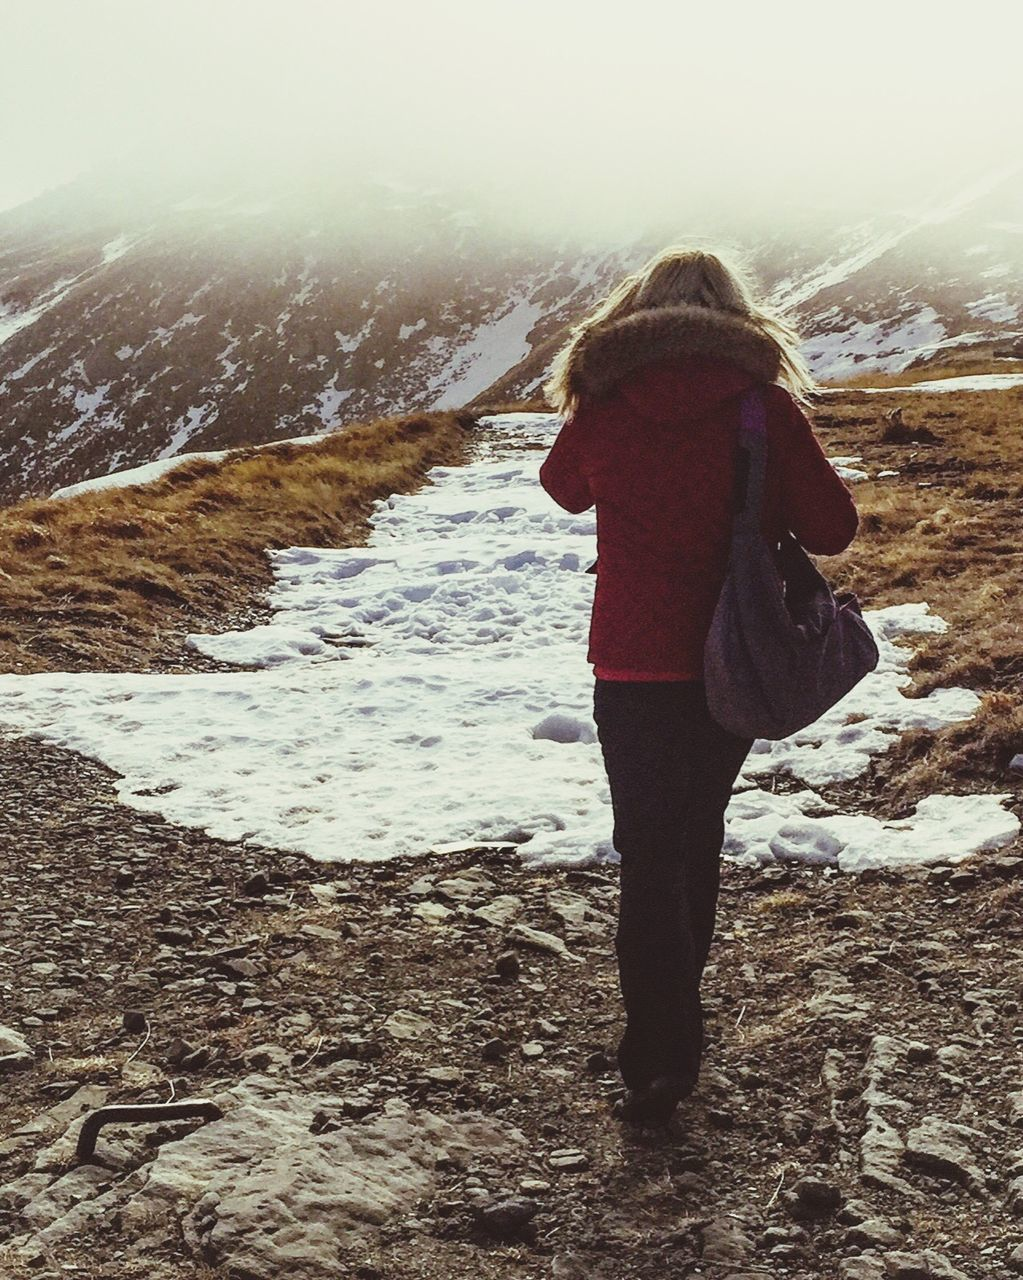 rear view, full length, winter, real people, nature, one person, leisure activity, standing, vacations, cold temperature, outdoors, lifestyles, beauty in nature, day, women, snow, landscape, beach, water, mountain, scenics, ankle deep in water, warm clothing, wave, sky, adult, people